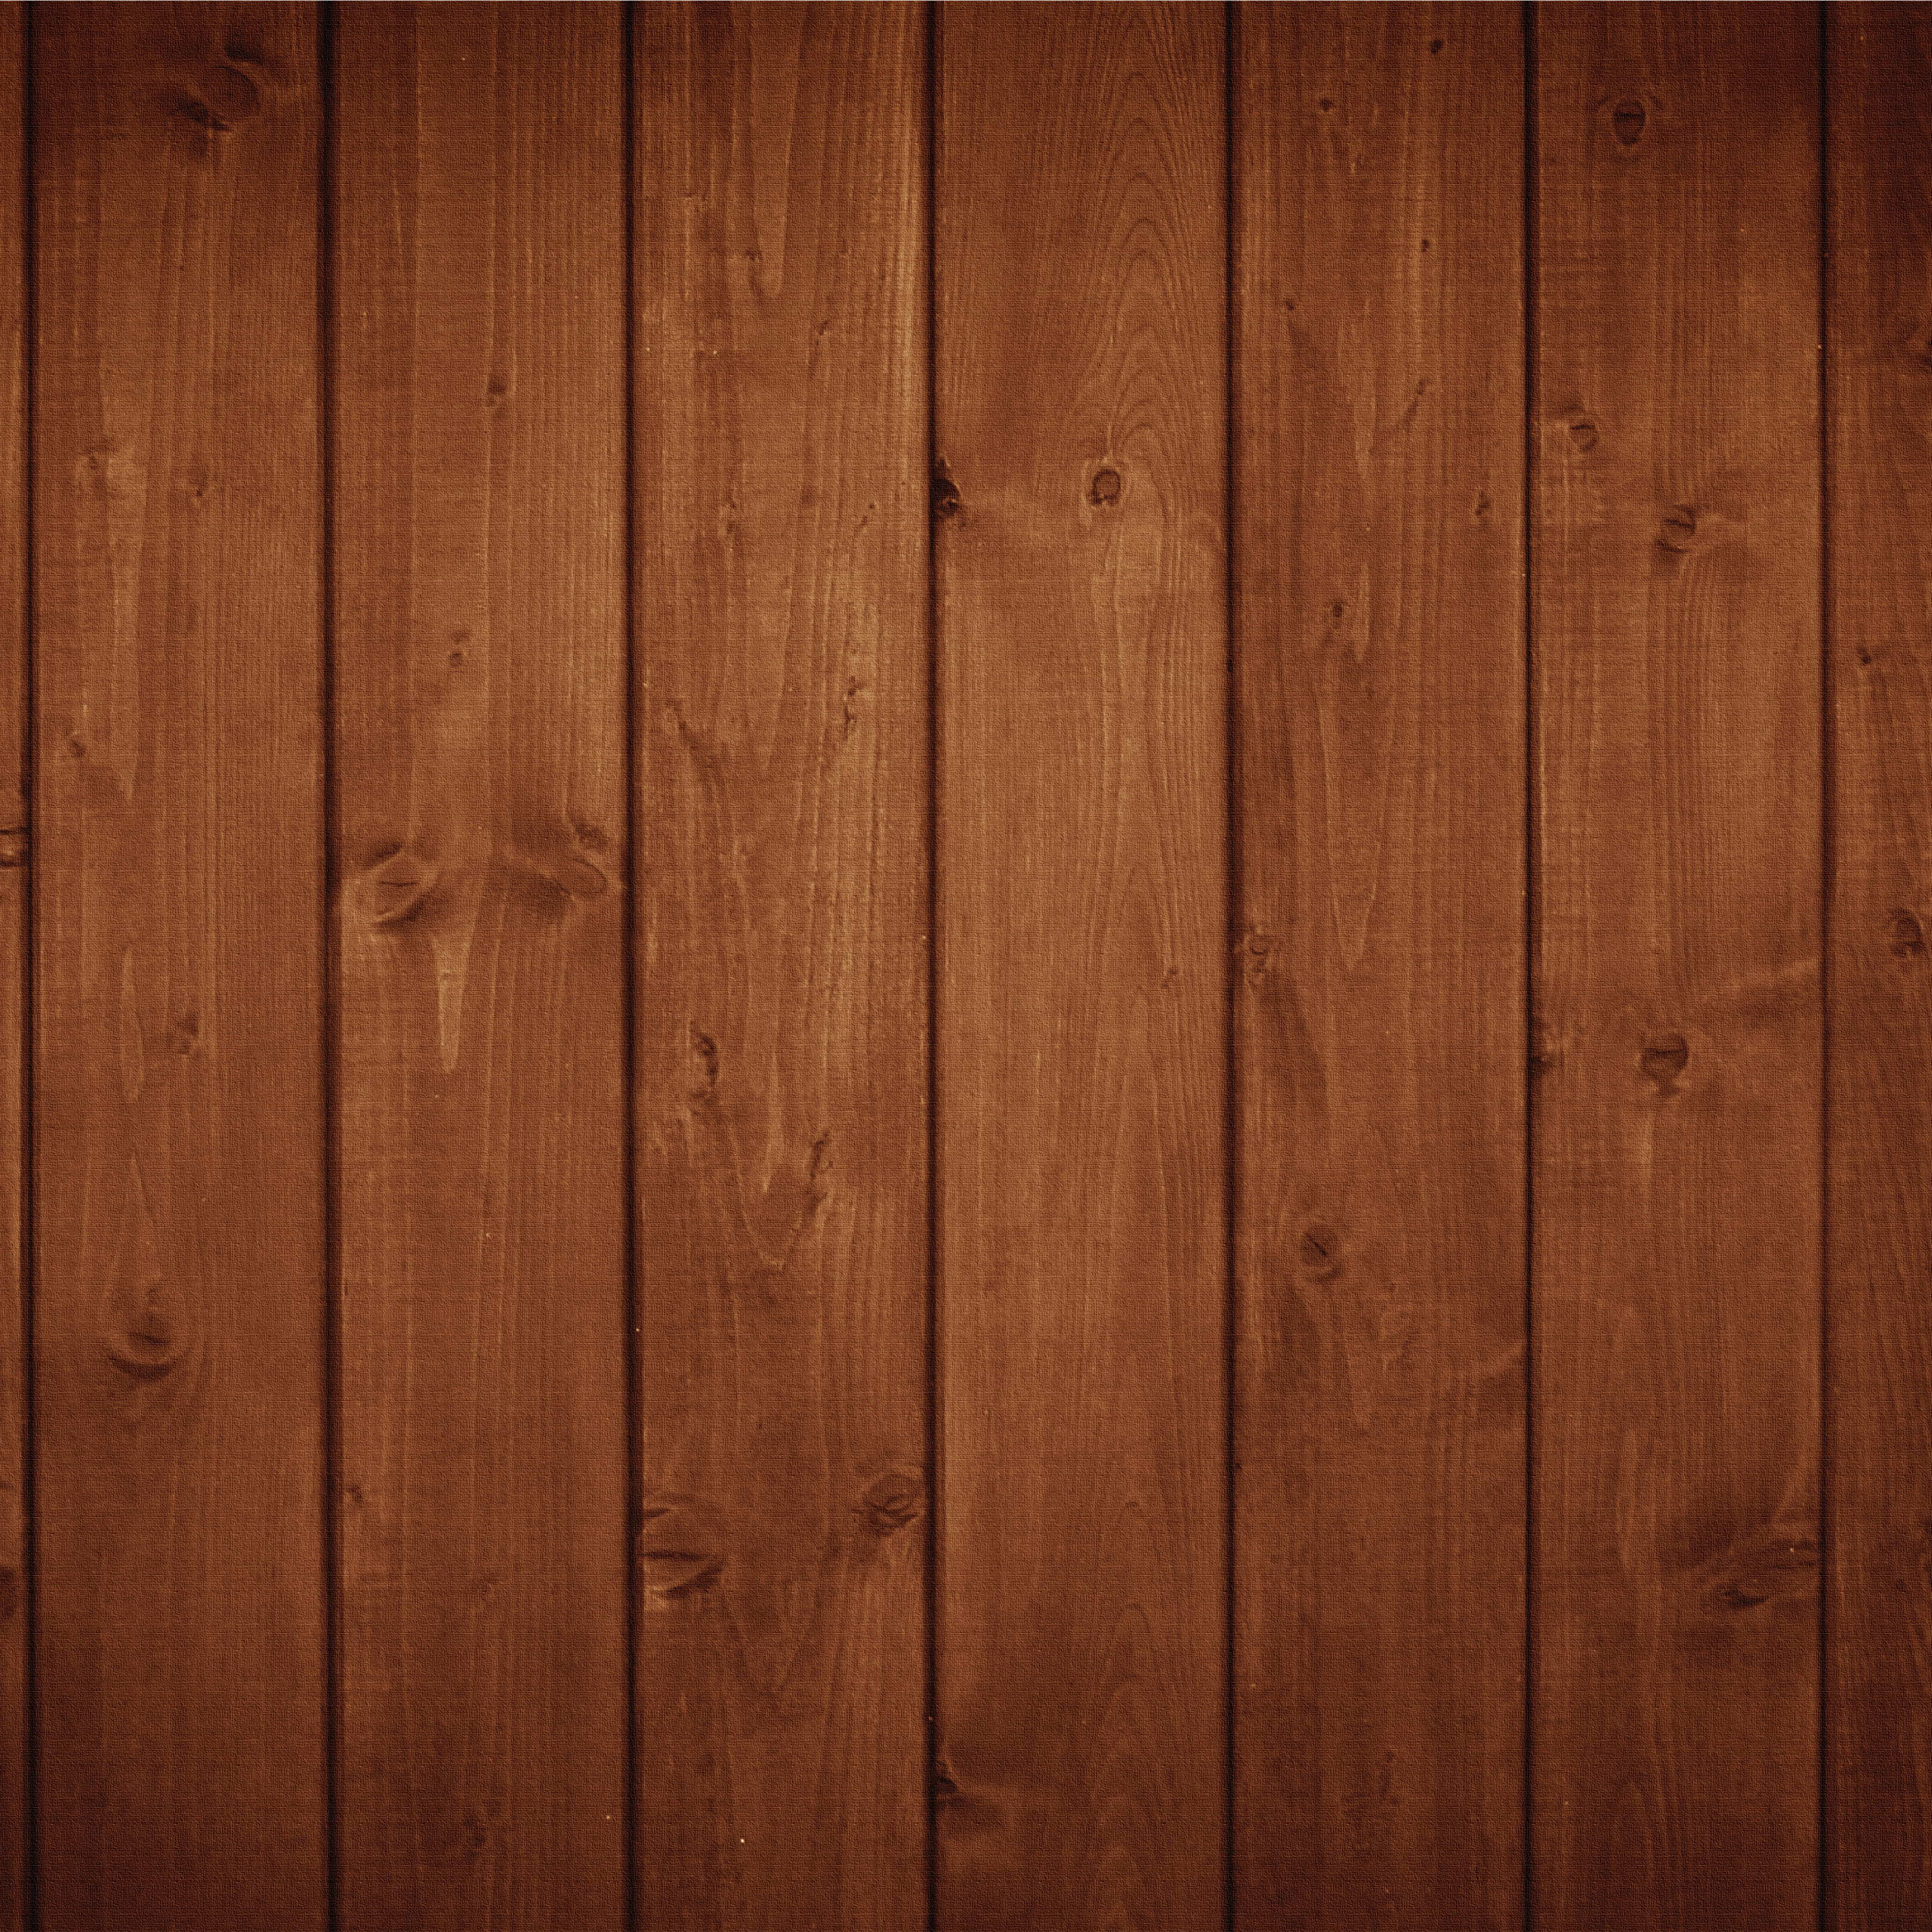 wood background wallpaper, download photo, background, texture, tree wood, download photo, planking